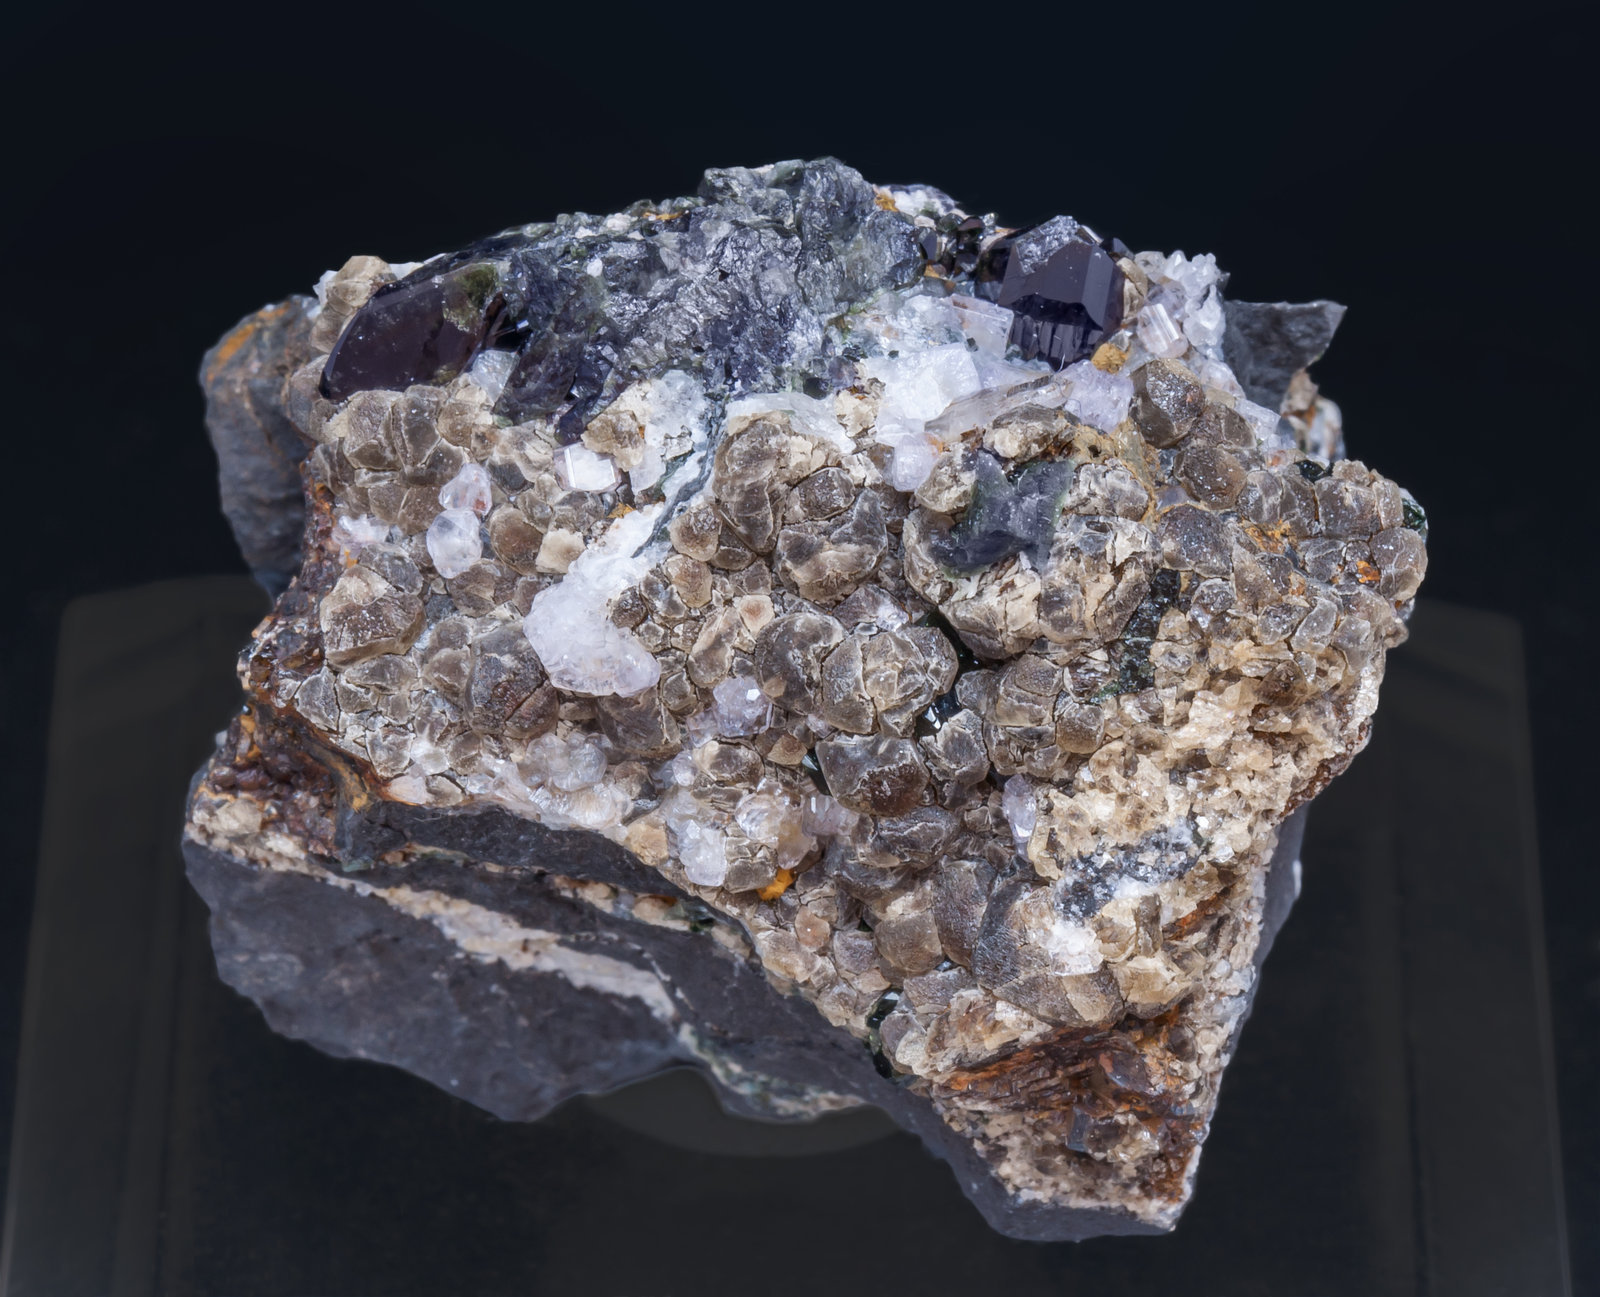 specimens/s_imagesAK3/Kulanite-MC11AK3f.jpg